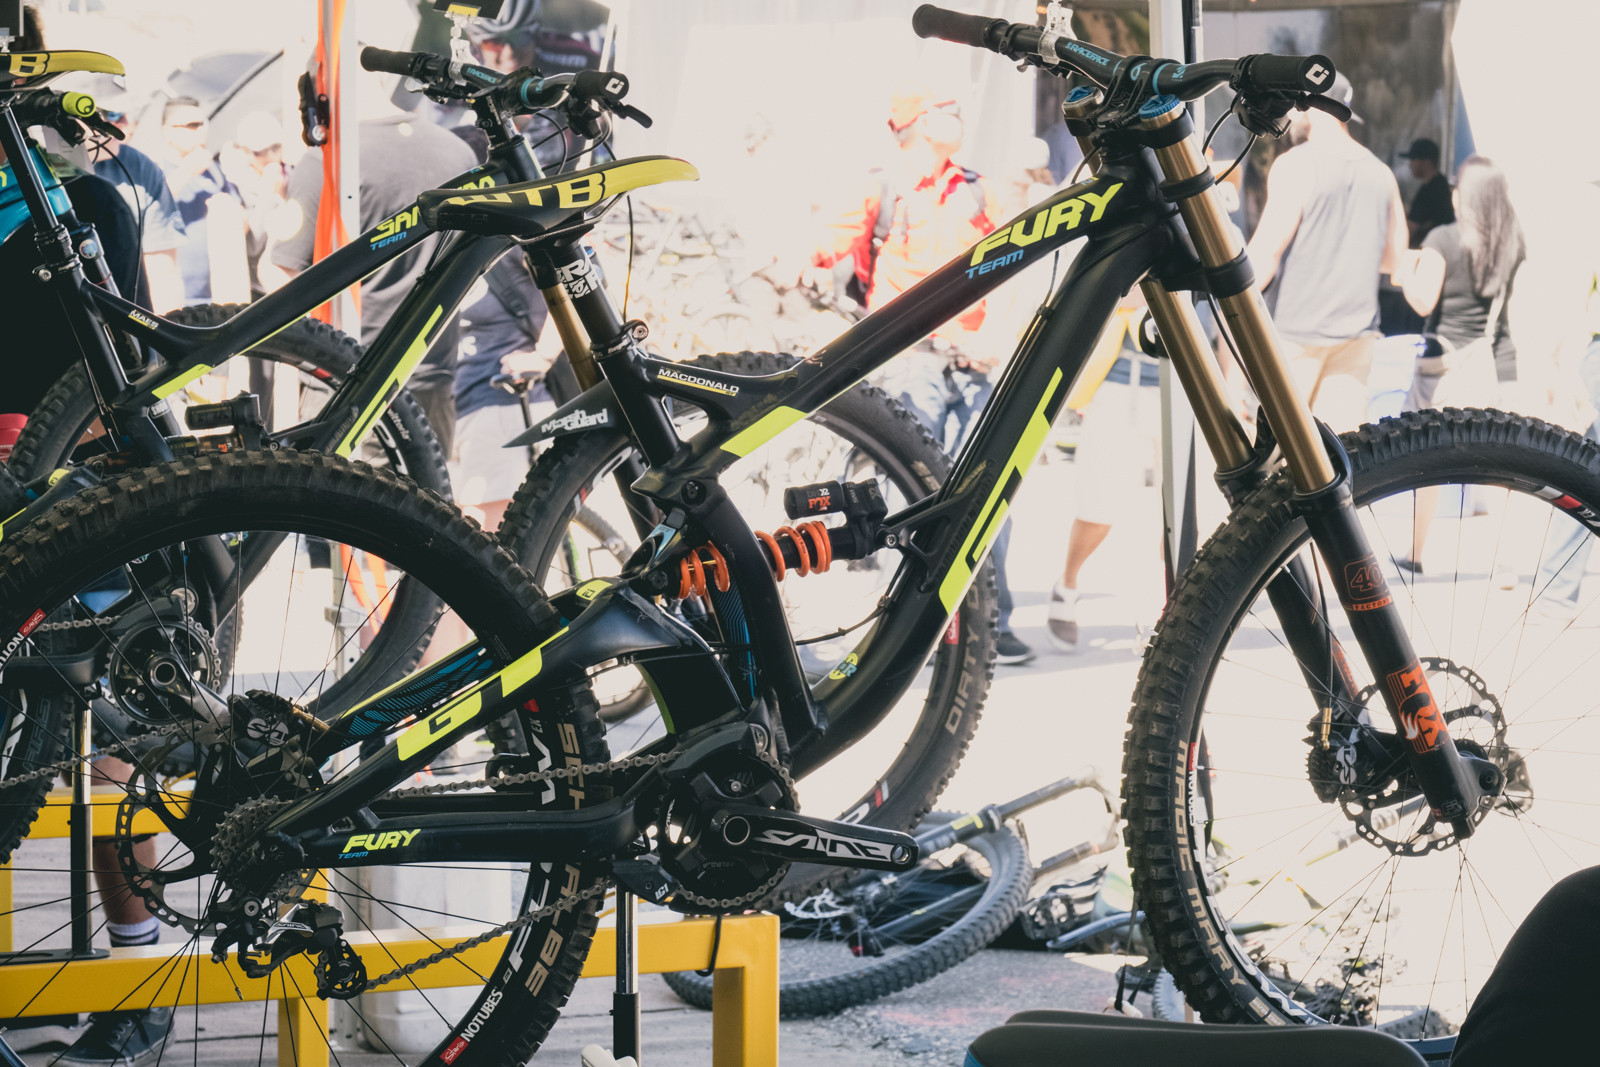 Brook Macdonald's GT Fury Team Downhill Bike - 2016 Sea Otter Classic Pit Bits - Mountain Biking Pictures - Vital MTB